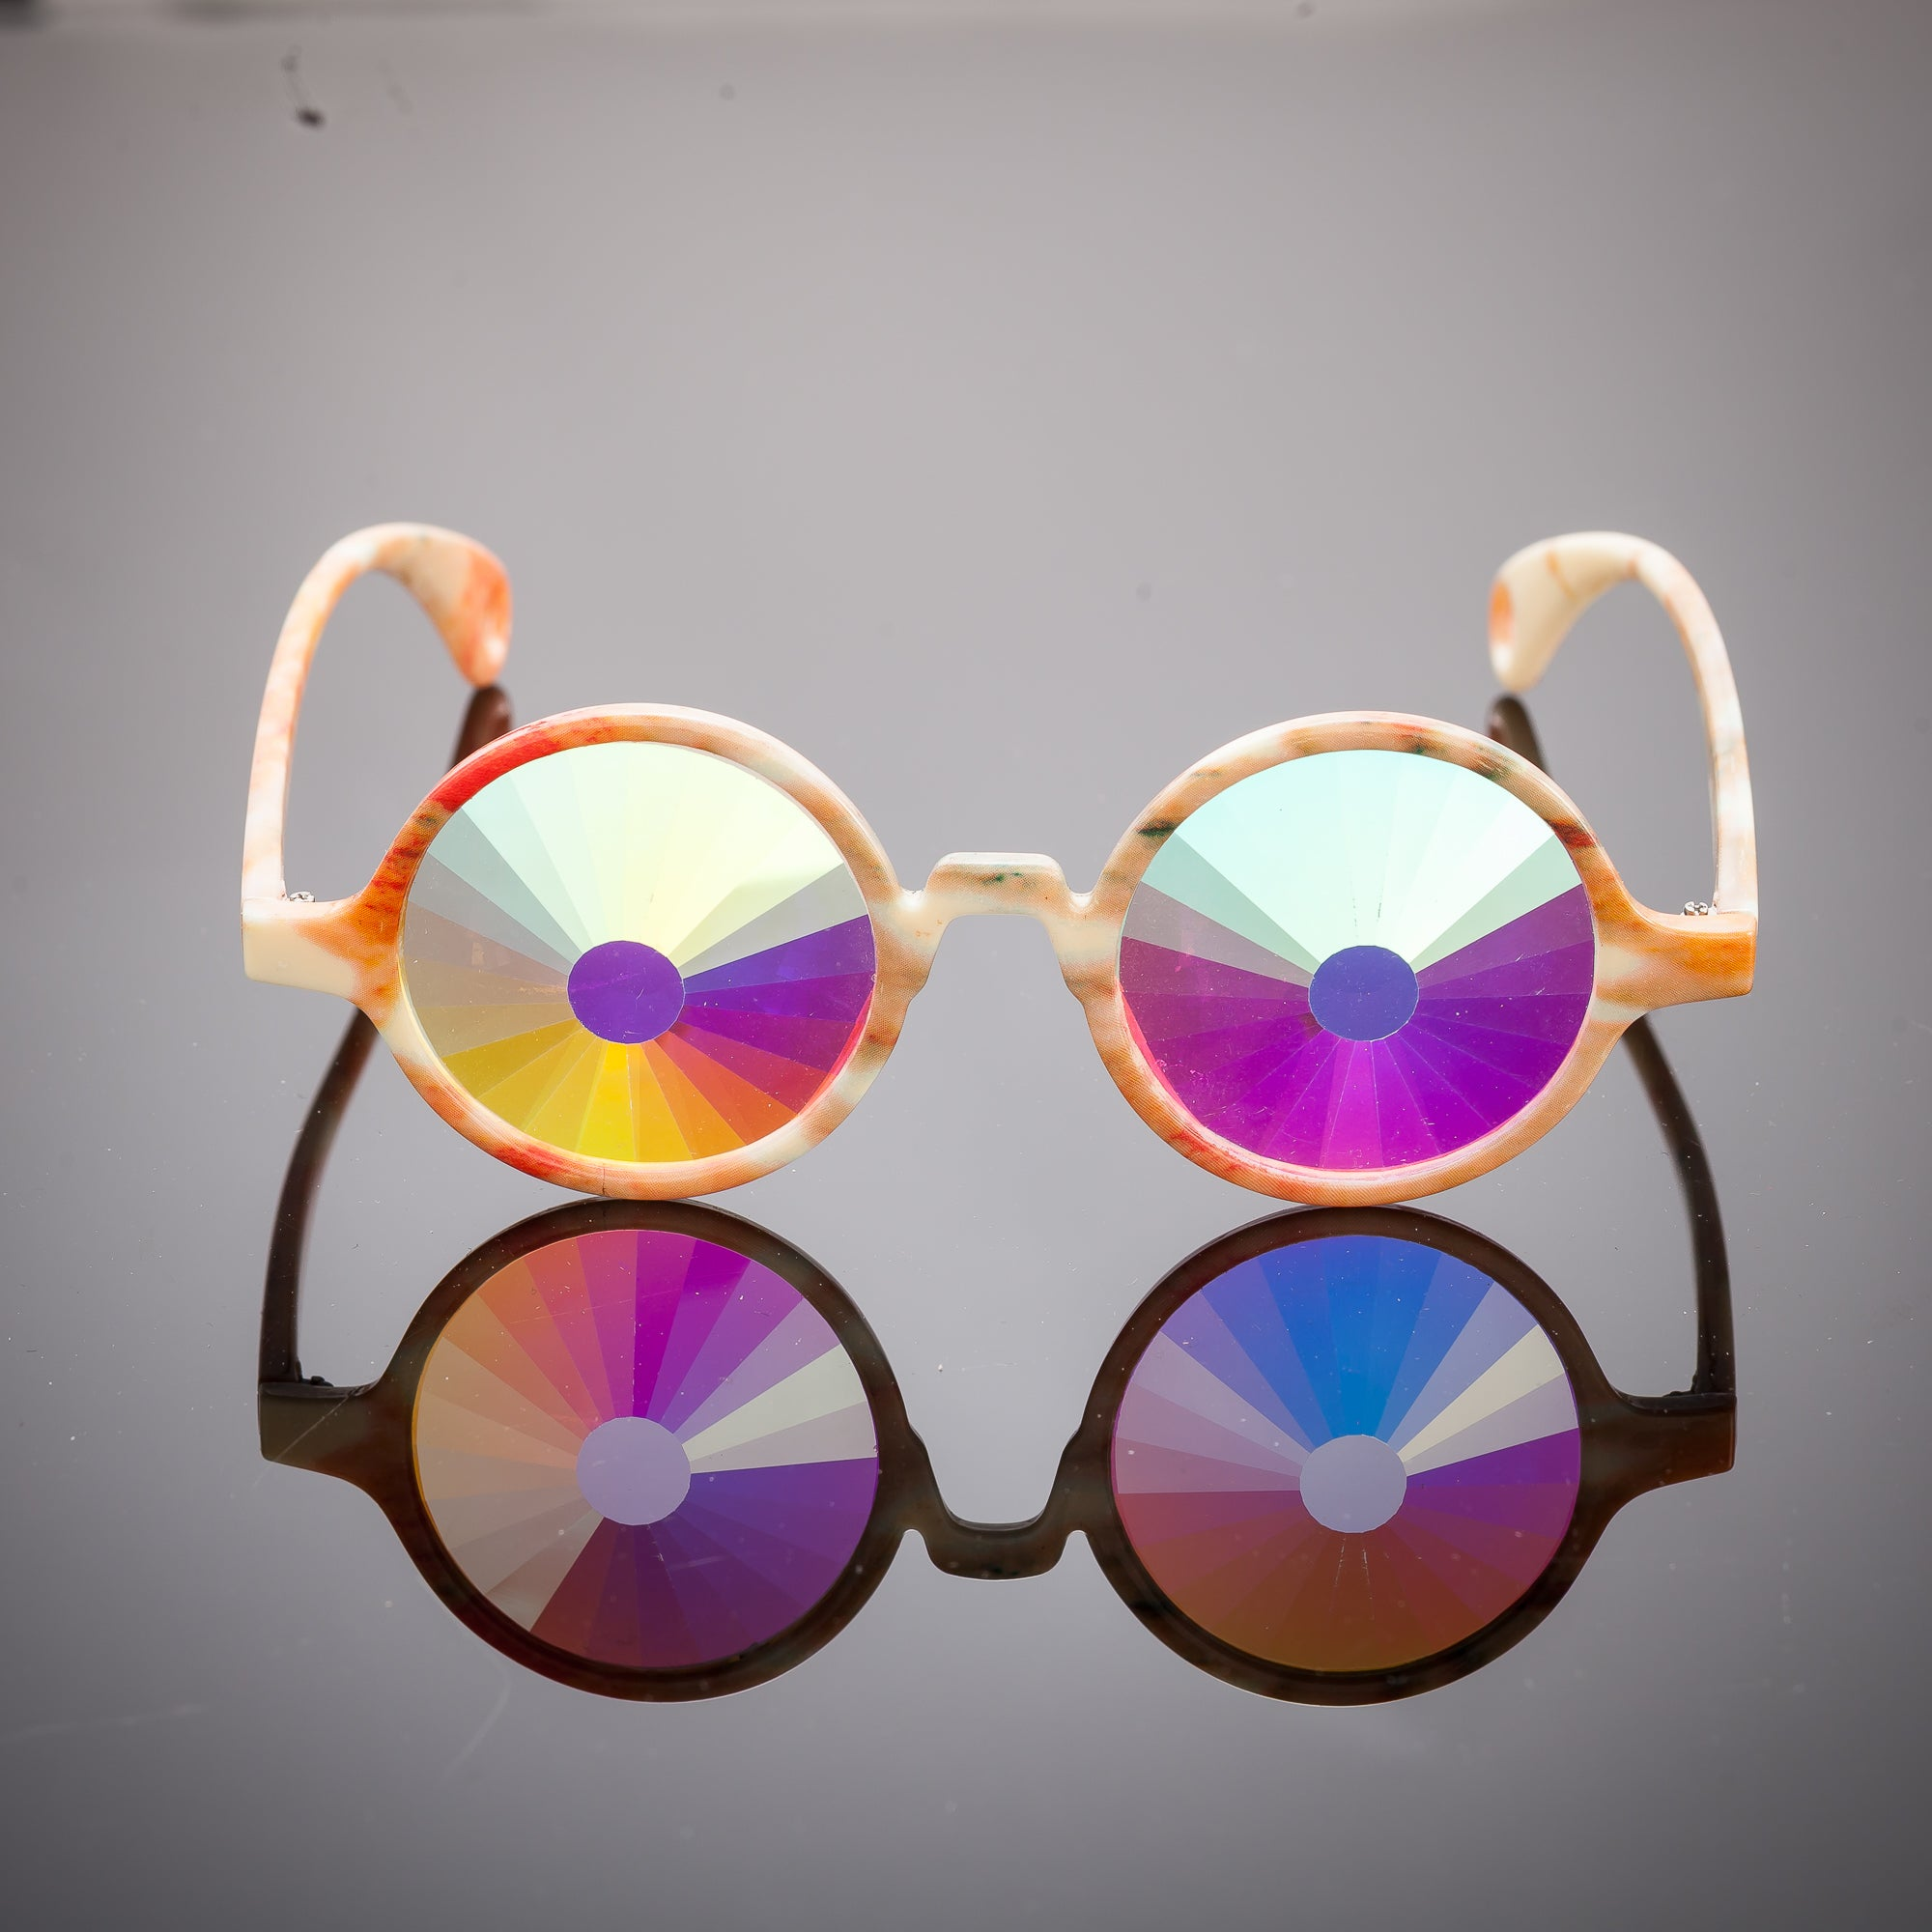 Orange Marble Portal Kaleidoscope Glasses - SuperFried